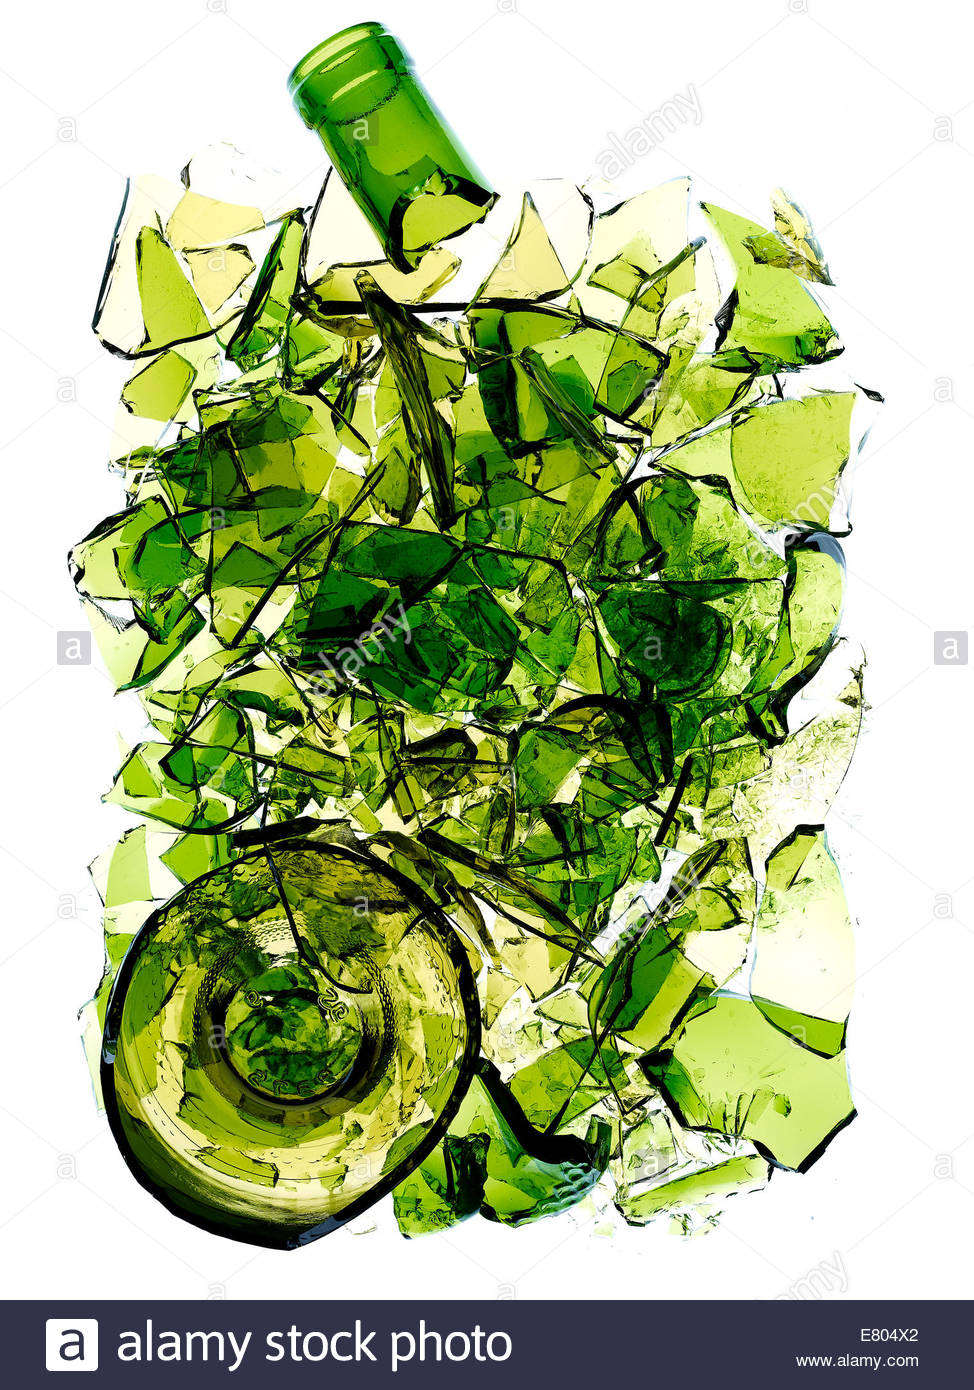 shattered & broken green color bottle against white background - Stock Image